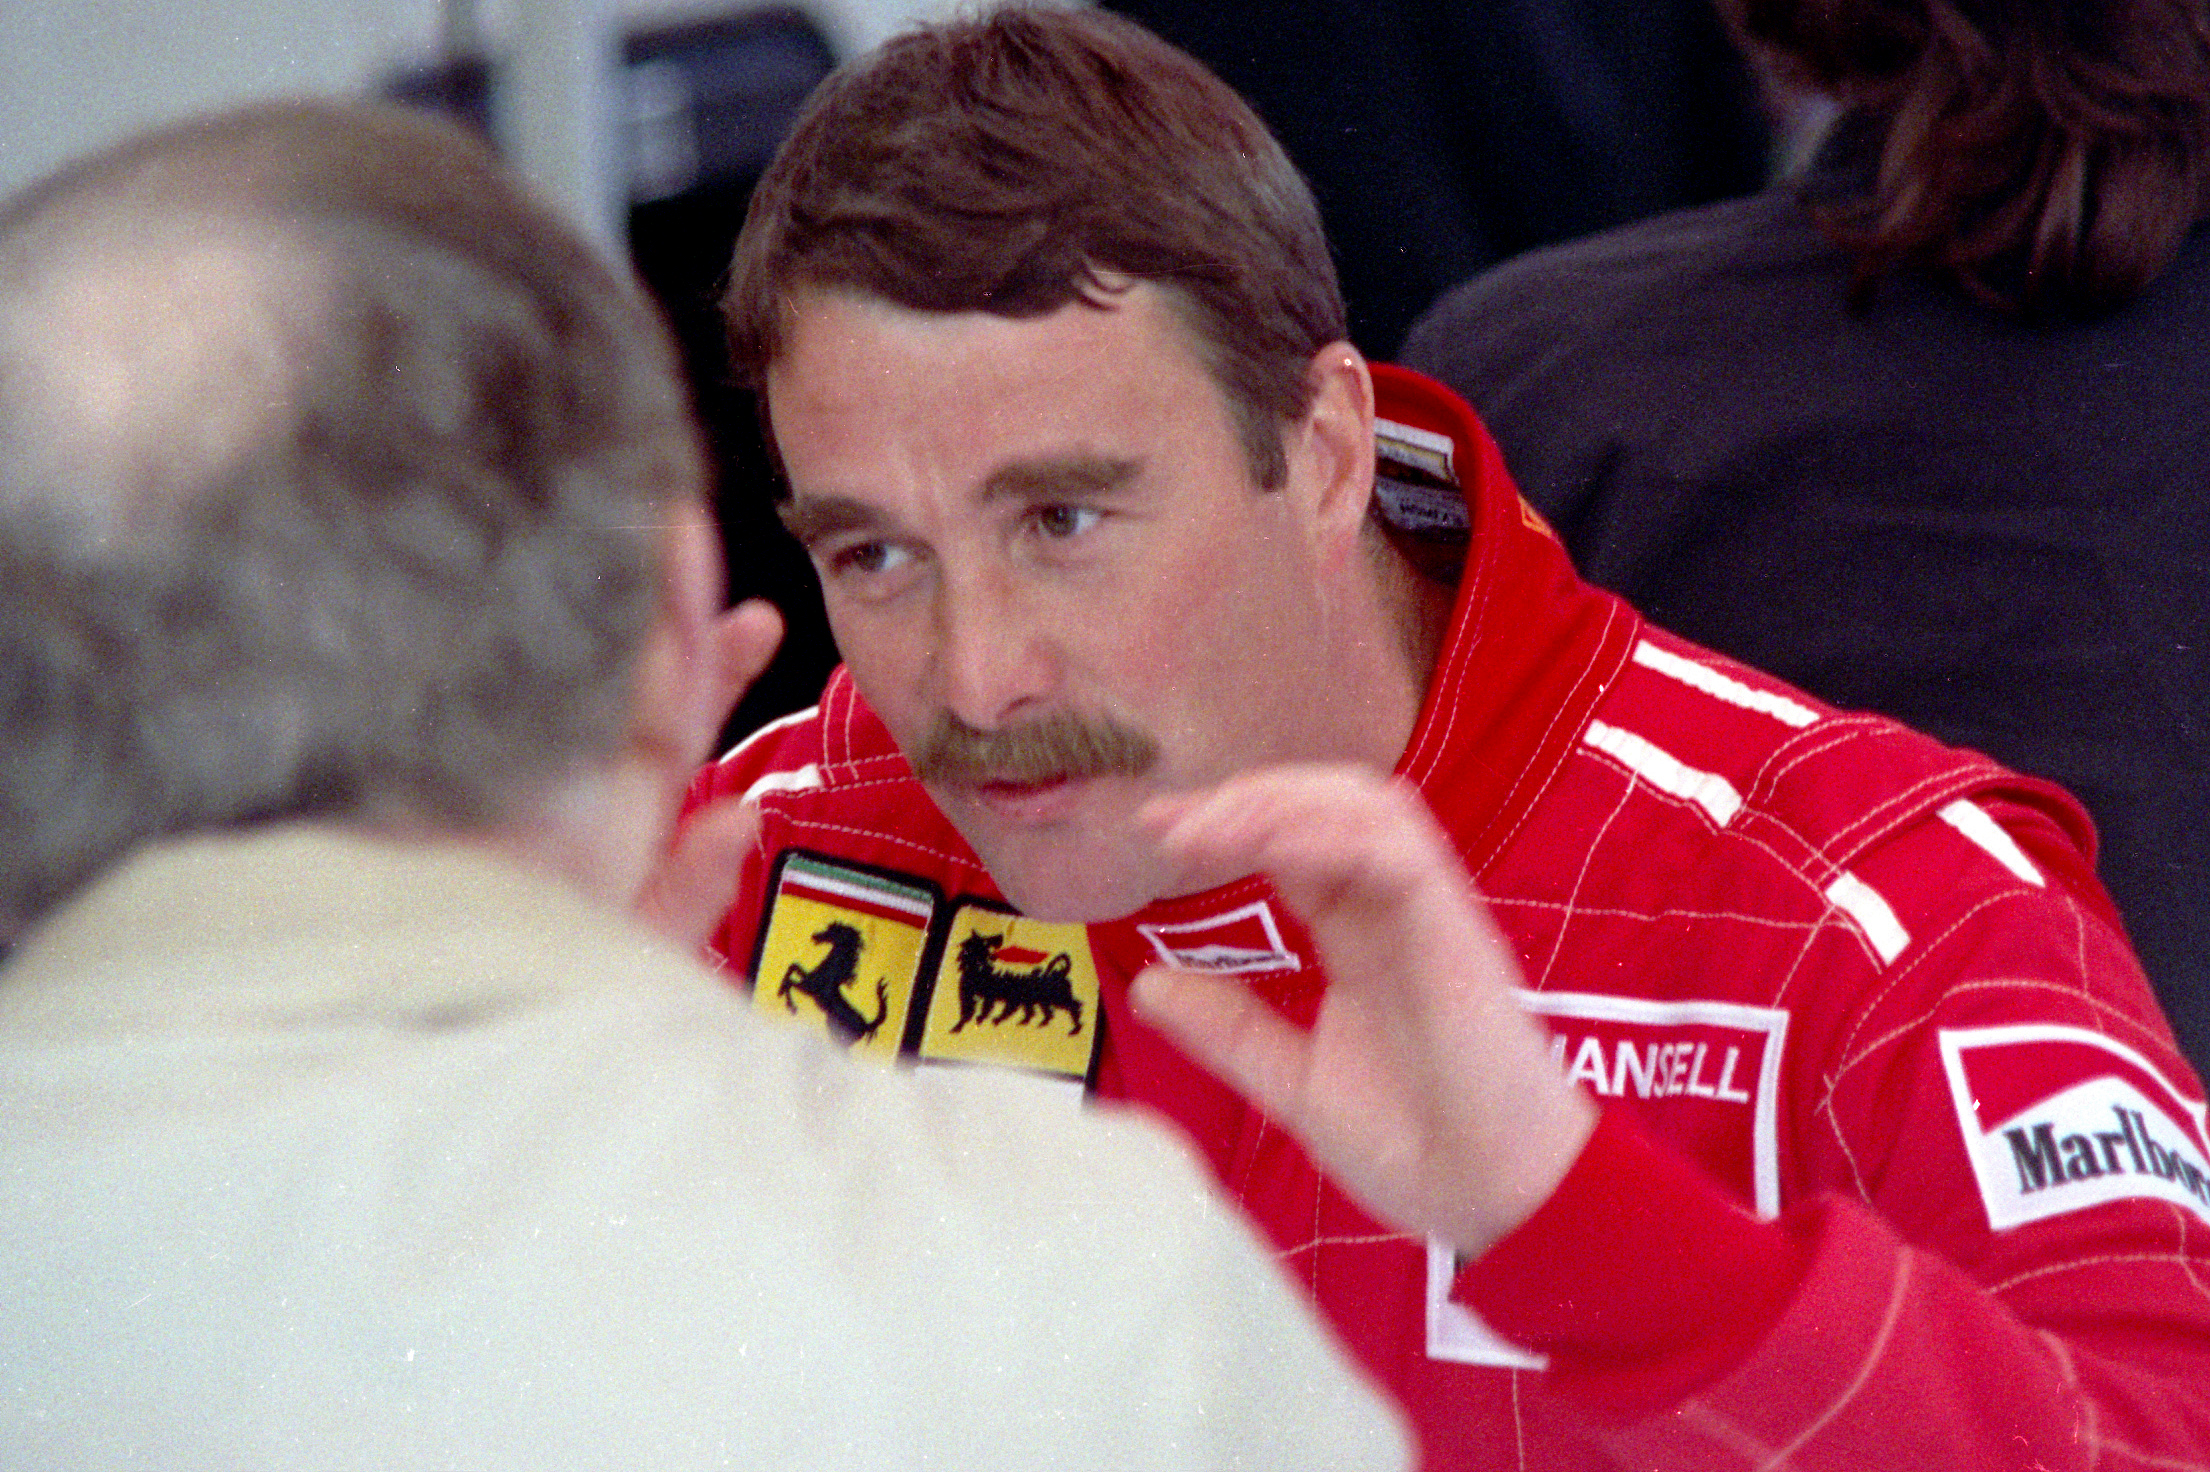 Nigel Mansell Net Worth